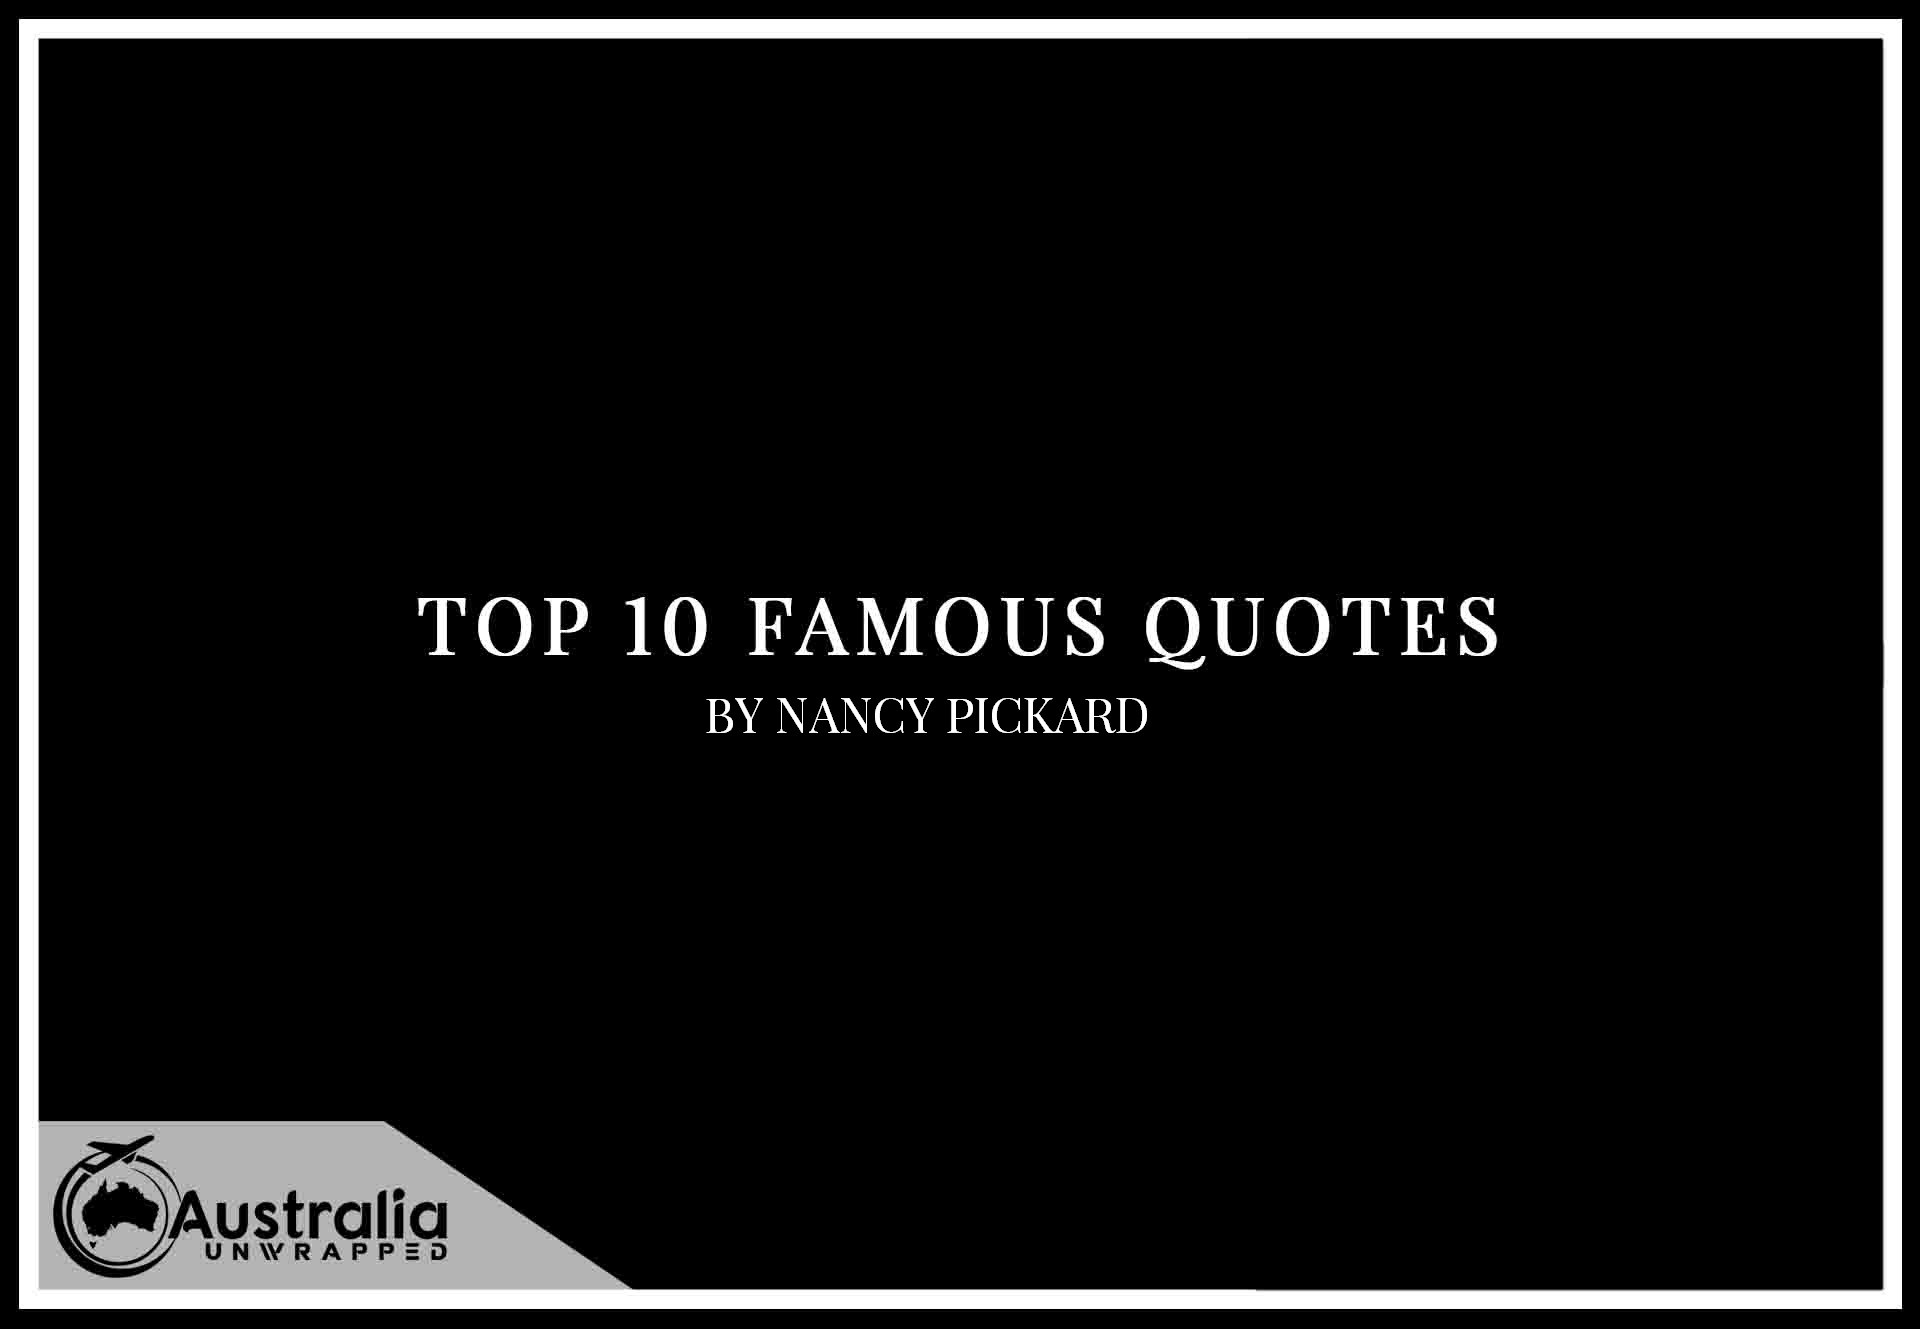 Top 10 Famous Quotes by Author Nancy Pickard